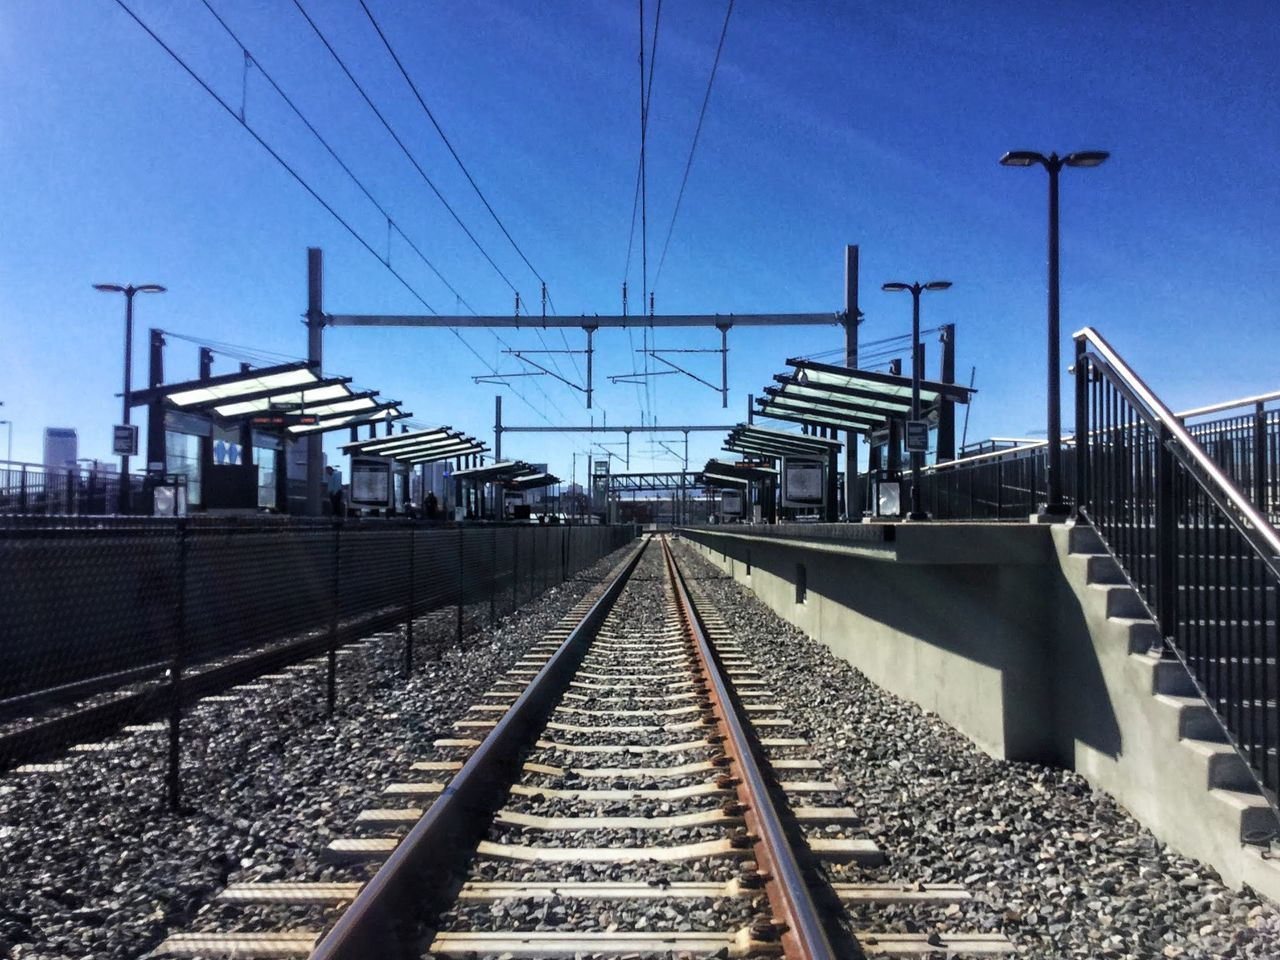 Cable Clear Sky Connection Day Electricity  Electricity Pylon No People Outdoors Public Transportation Rail Transportation Railroad Tie Railroad Track Railway Signal Railway Track Sky The Way Forward Transportation